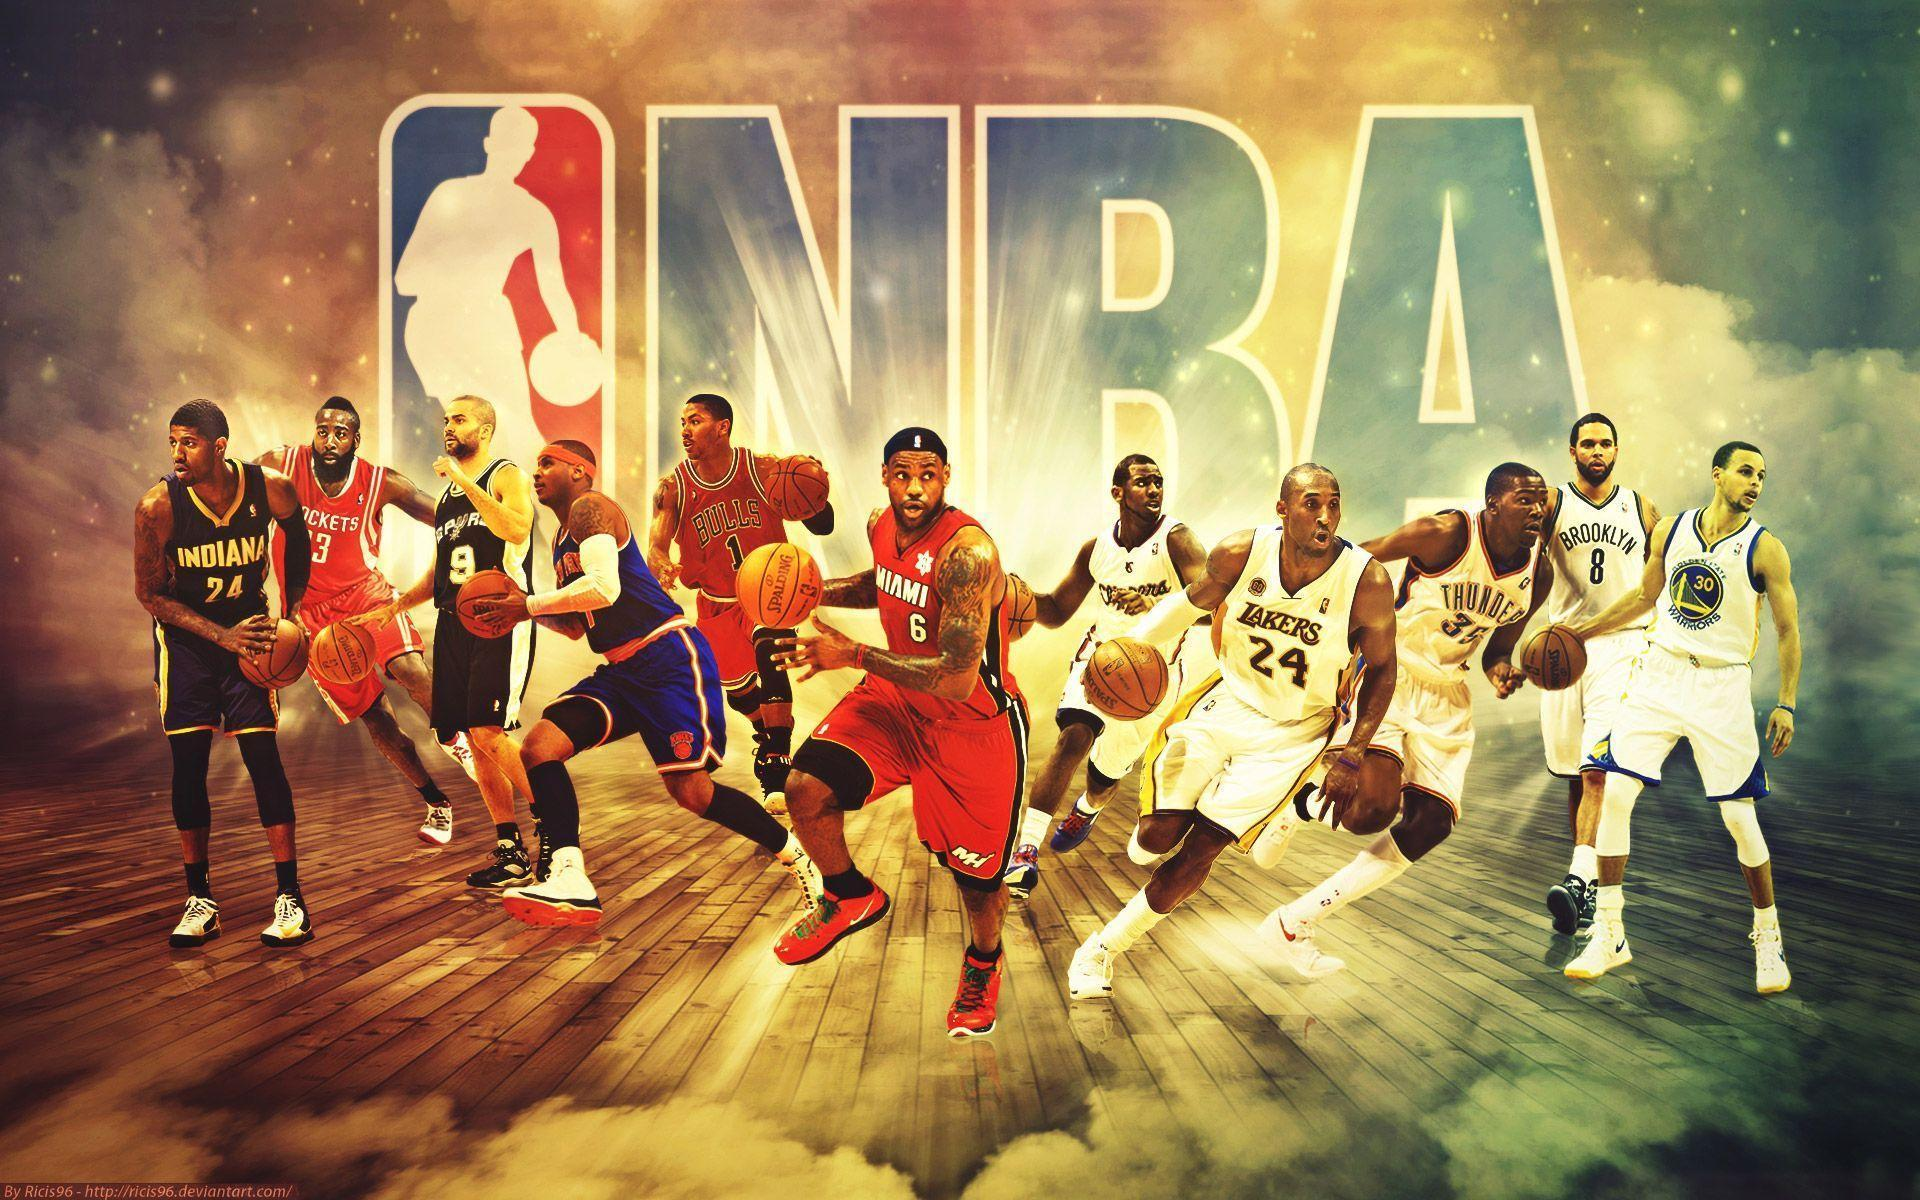 Nba Basketball Wallpapers 2015 - Wallpaper Cave